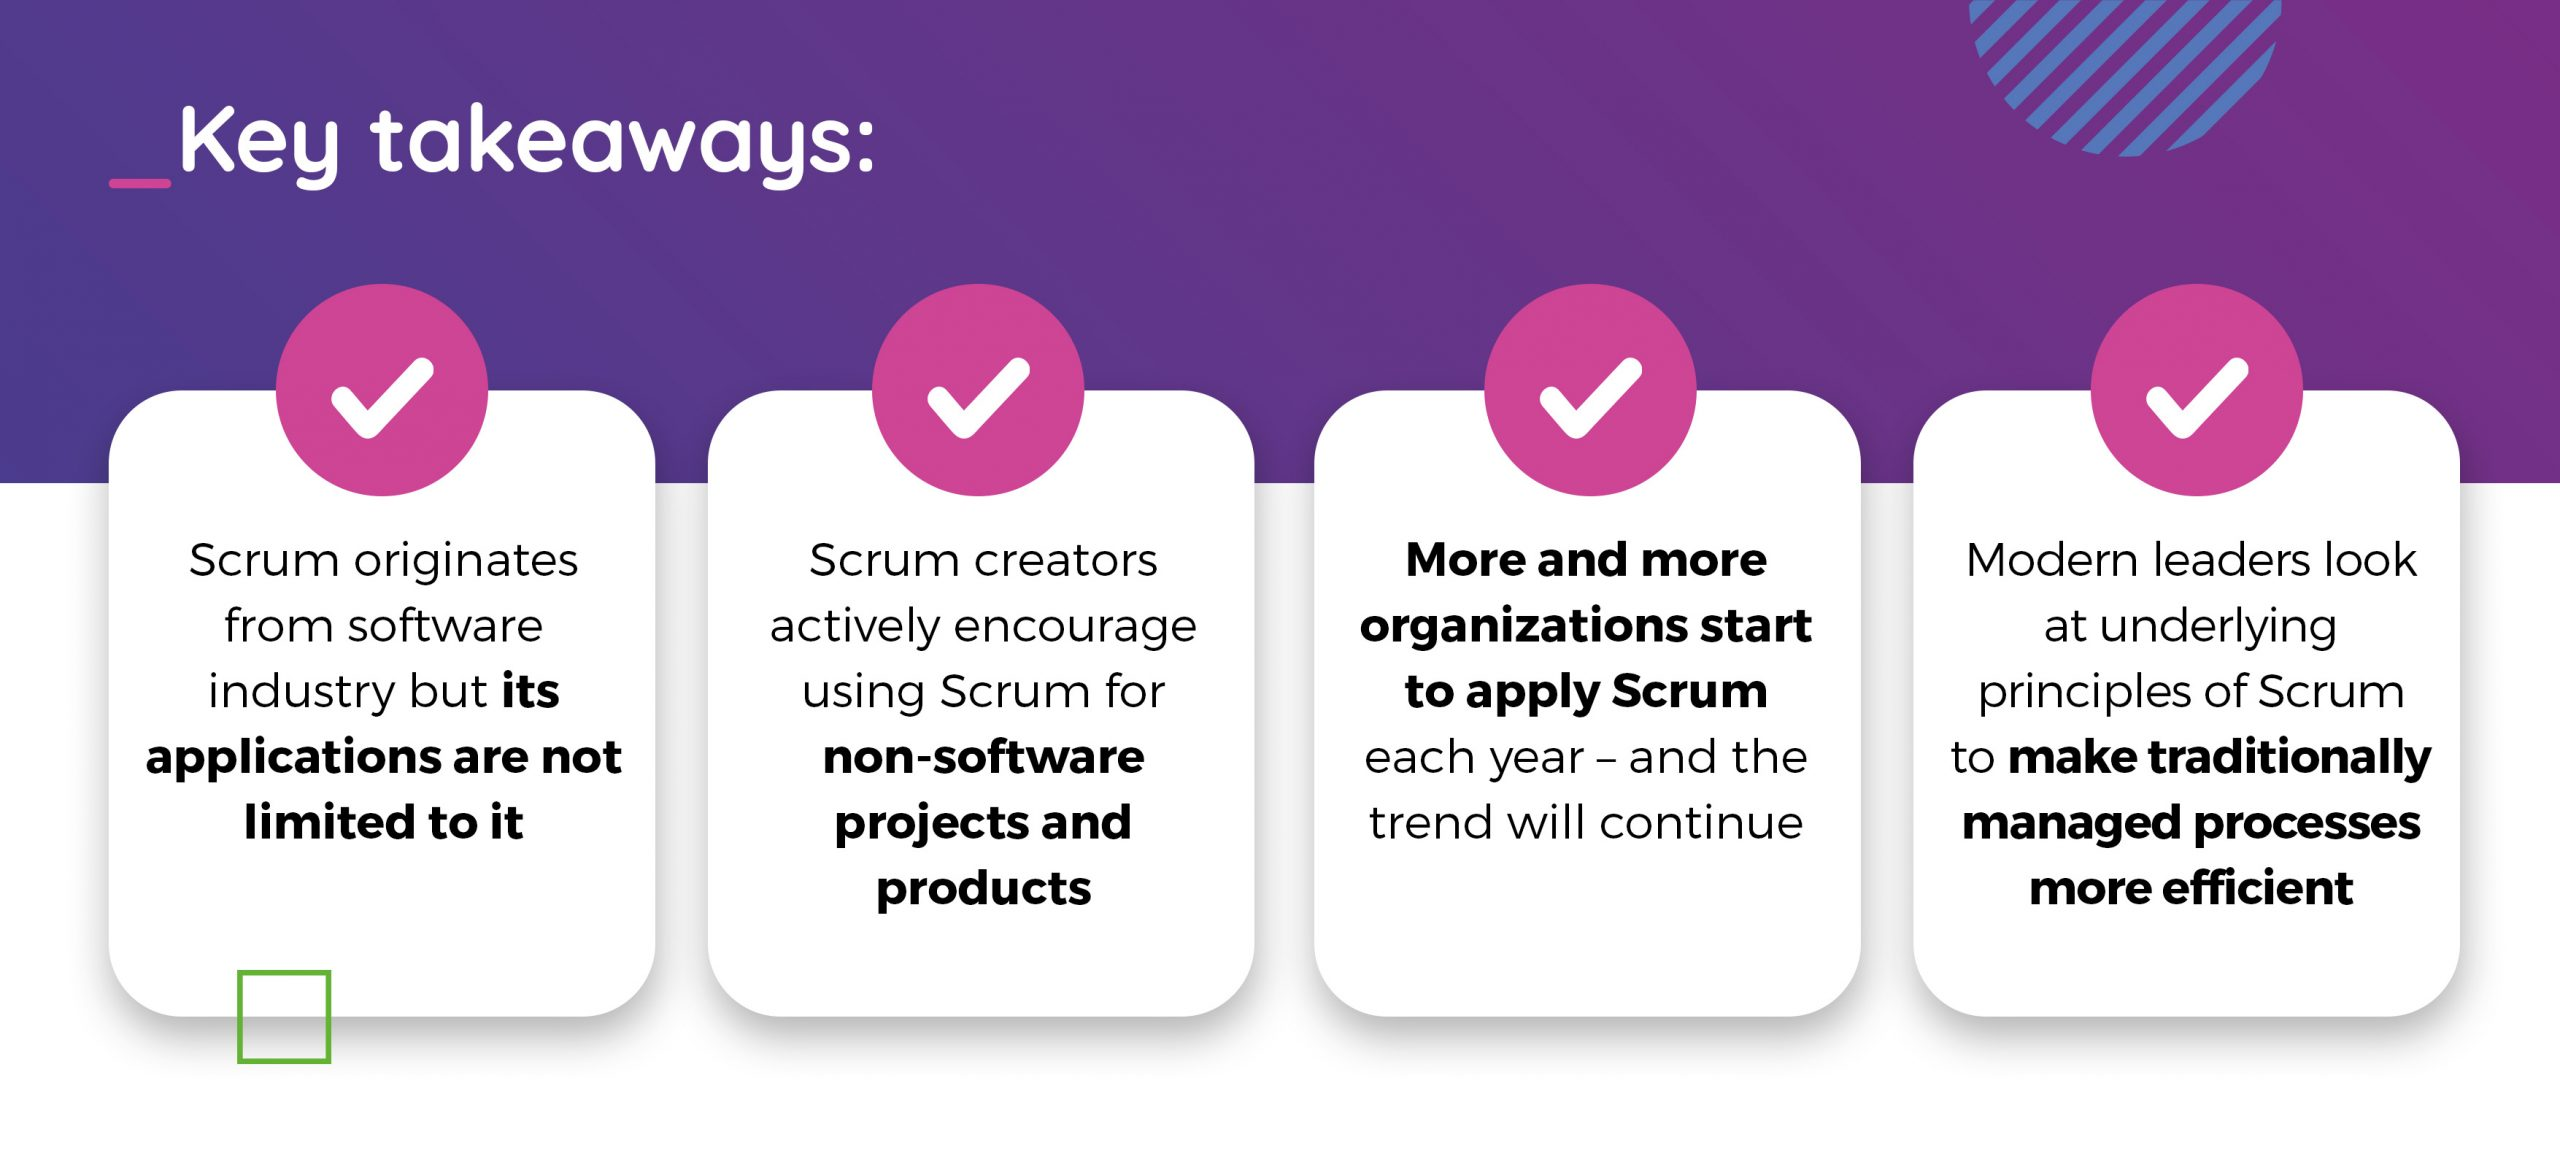 Agile and Scrum are just for software projects- key takeaways